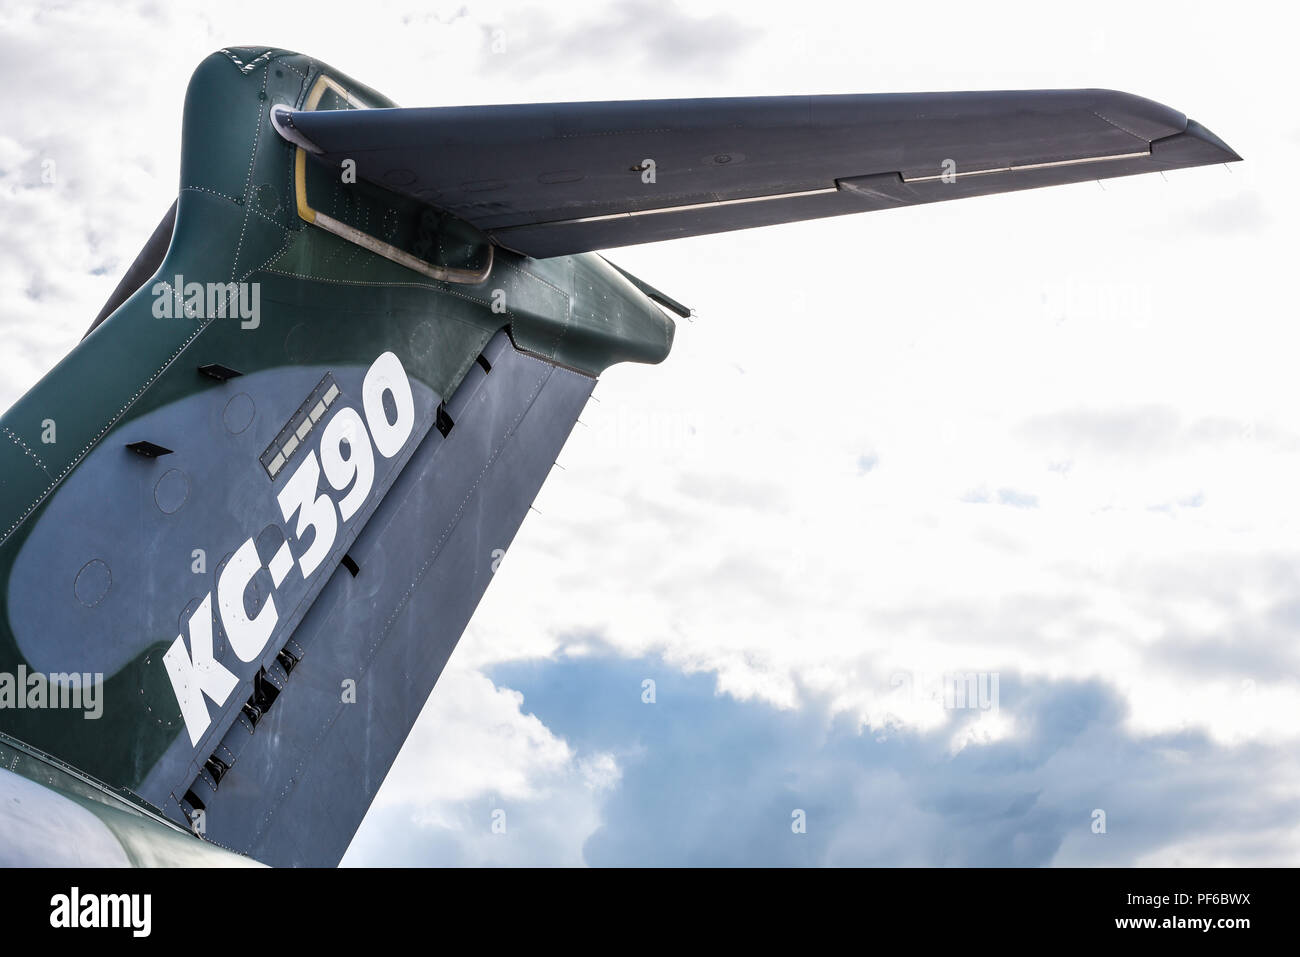 Embraer KC-390 transport jet plane at the Farnborough International Airshow FIA, aviation, aerospace trade show. High tail. Space for copy - Stock Image